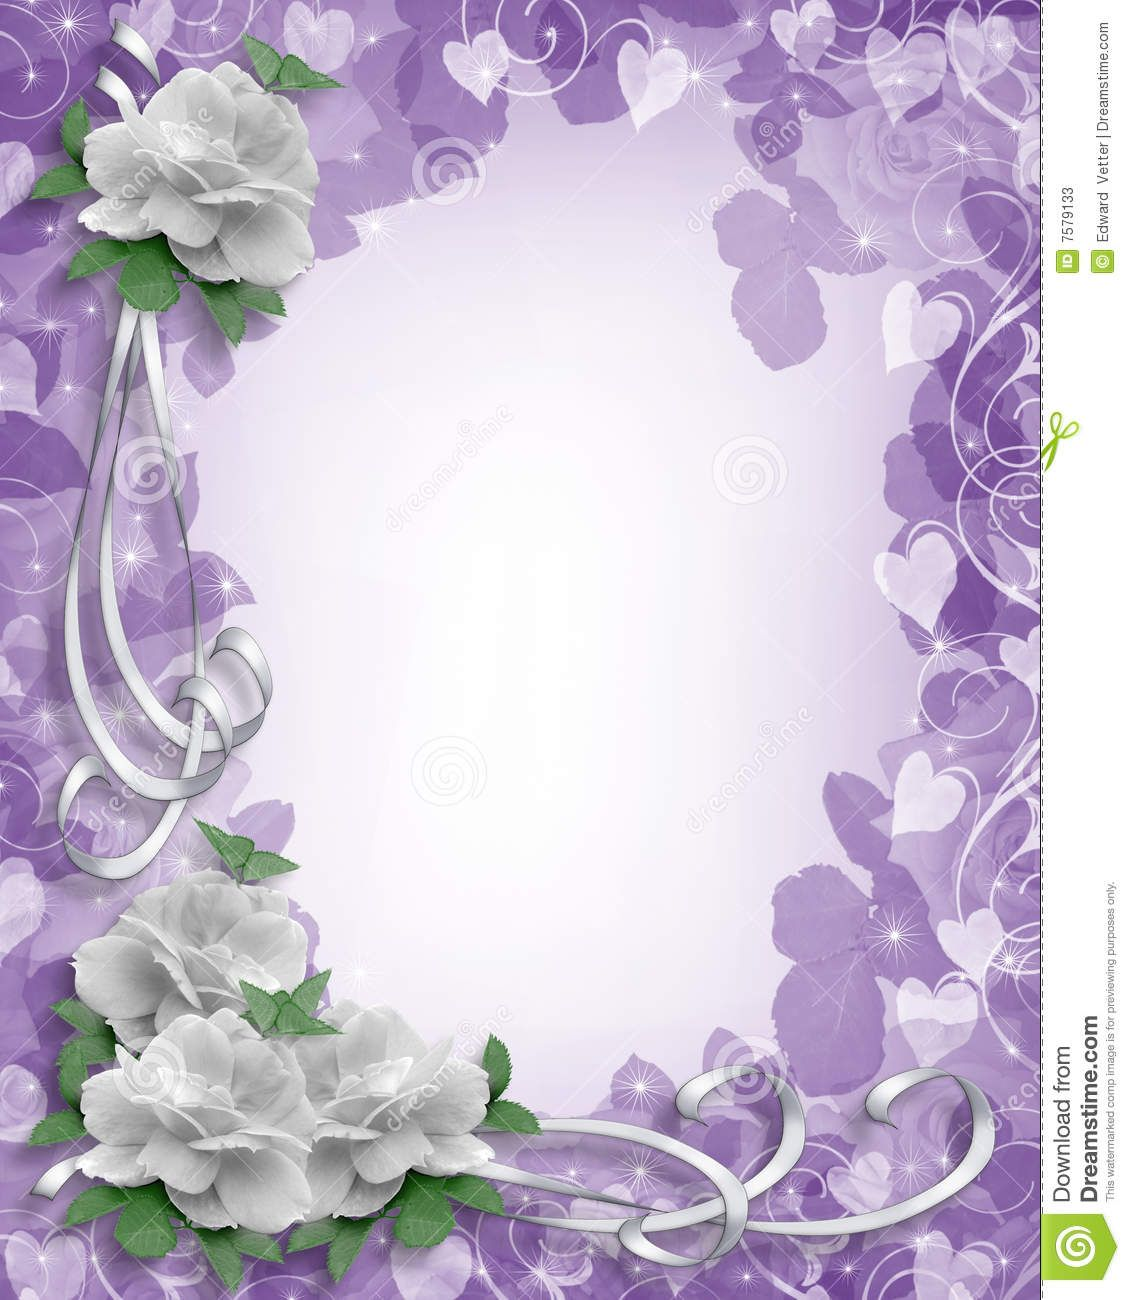 Wedding Border White Roses On Lavender Pastell Blumen Pastell Blumen